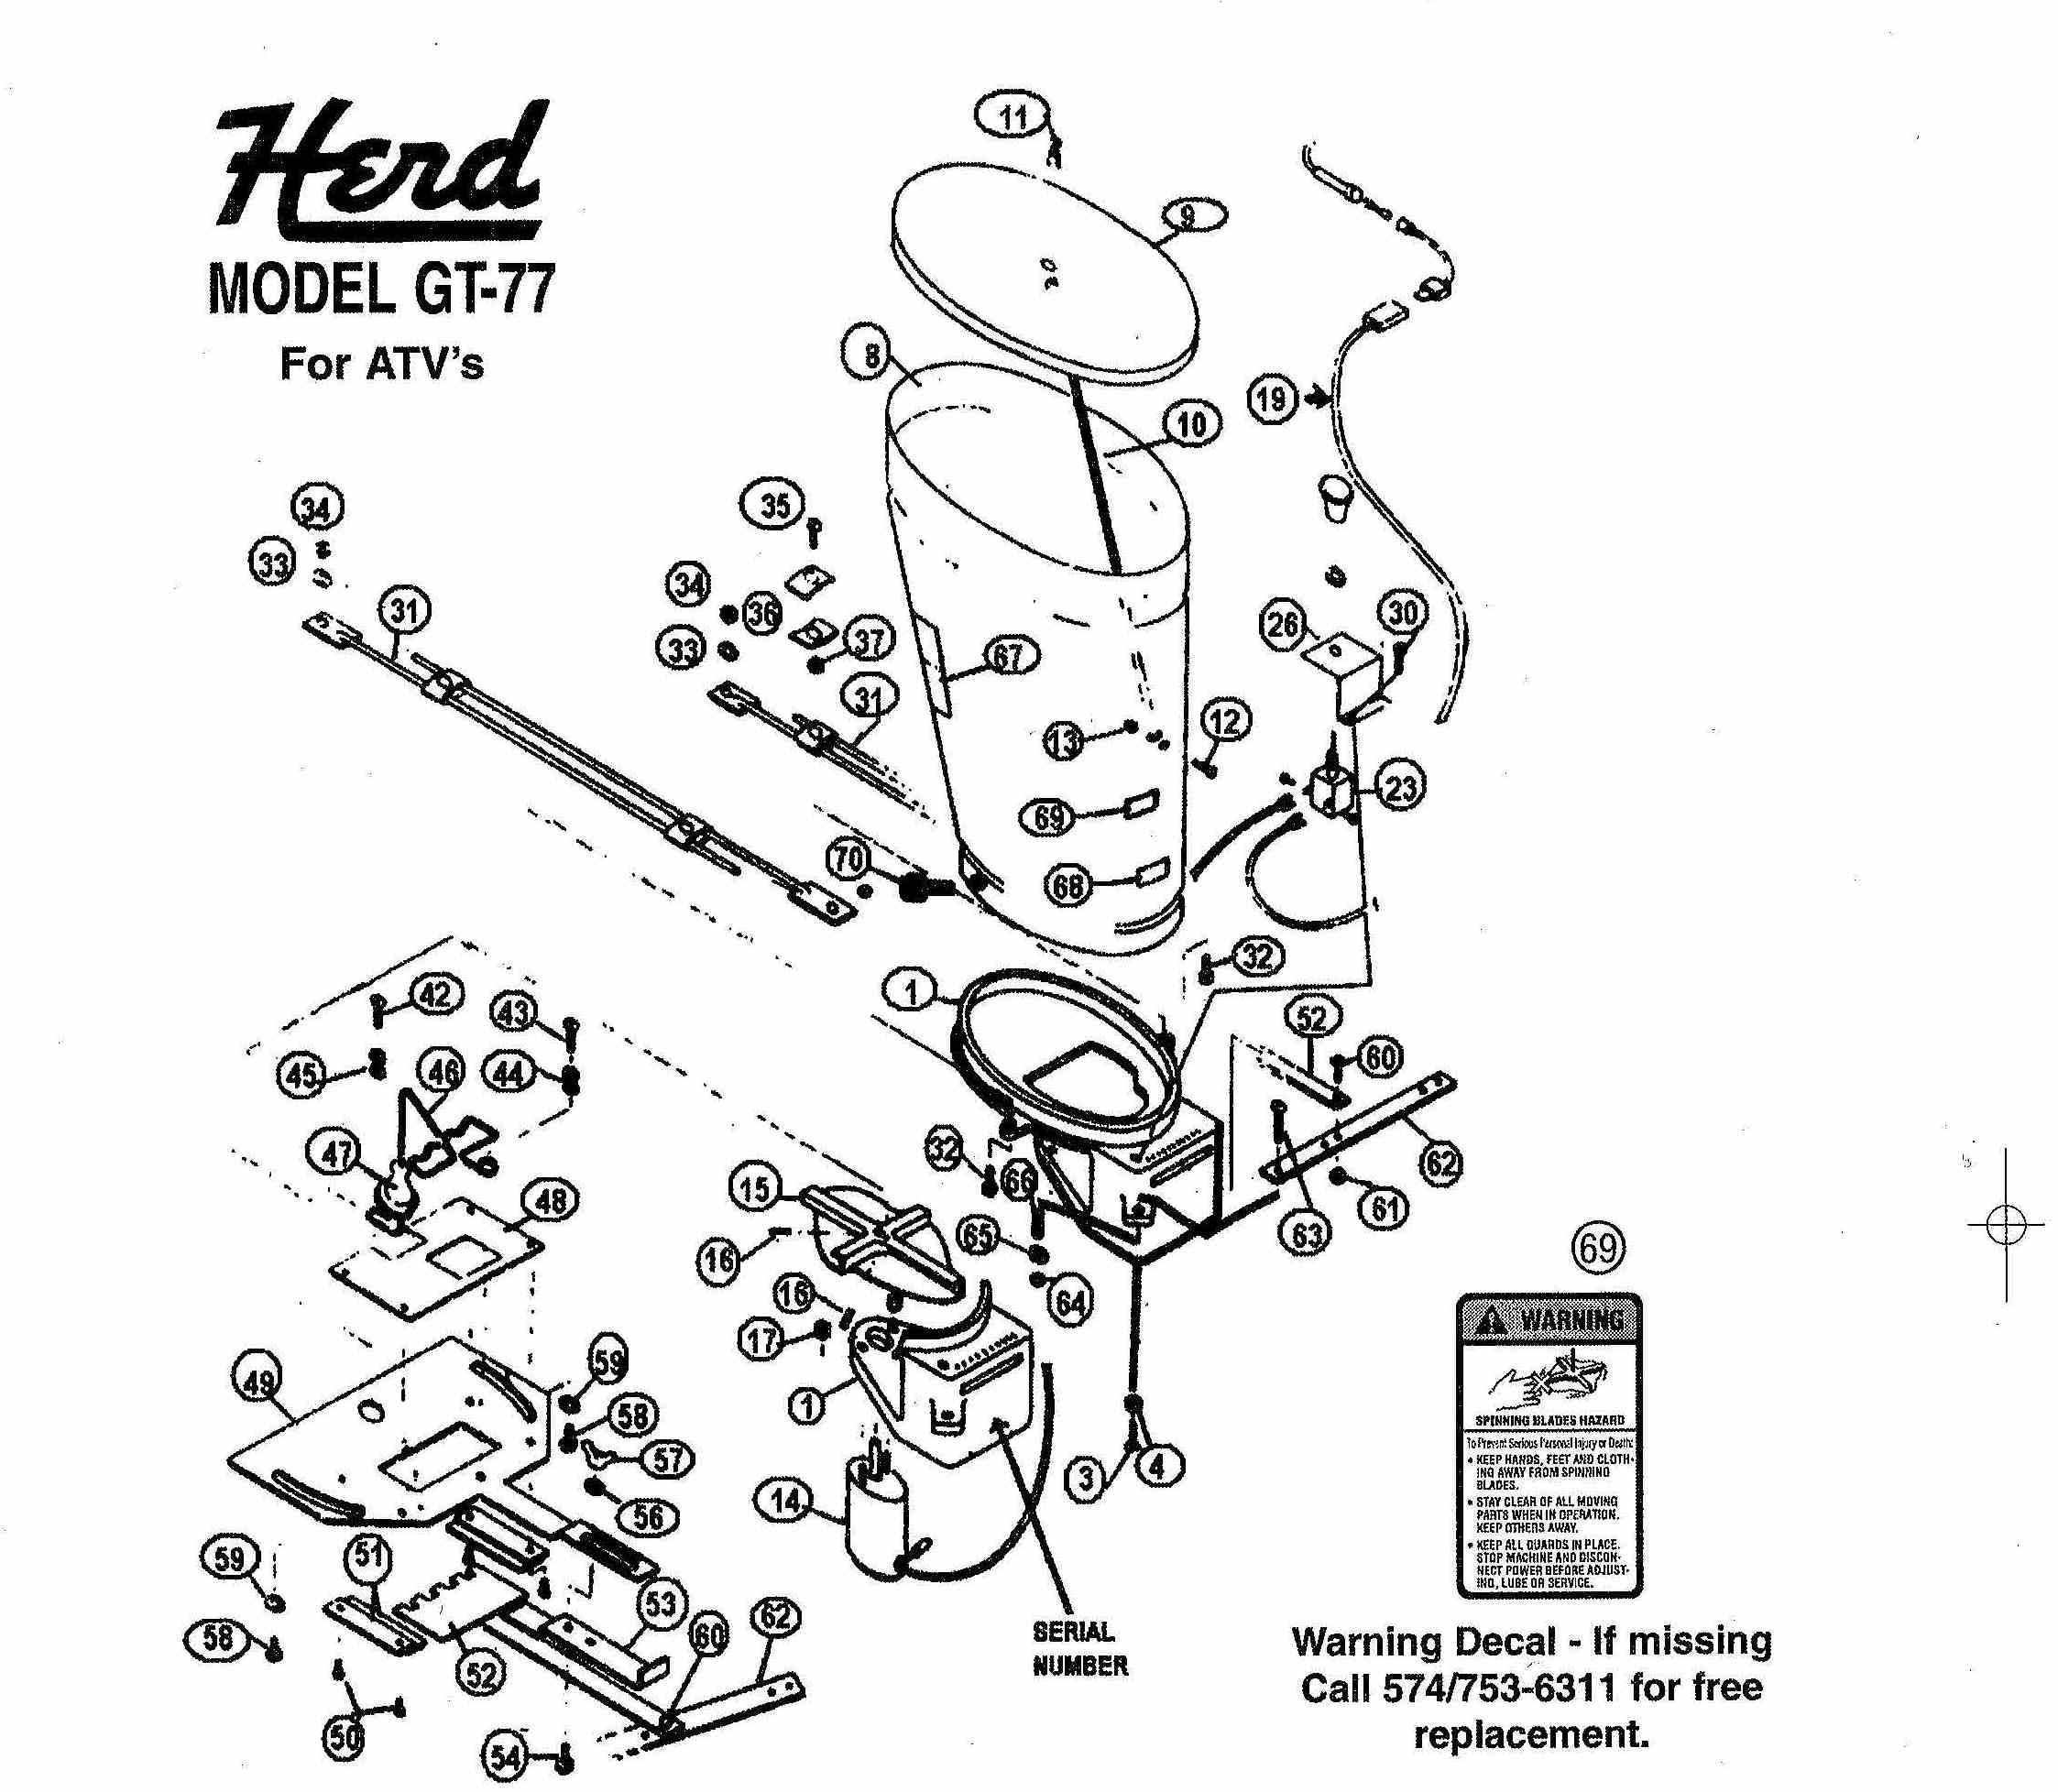 Exploded View Herd GT-77 Spreaders